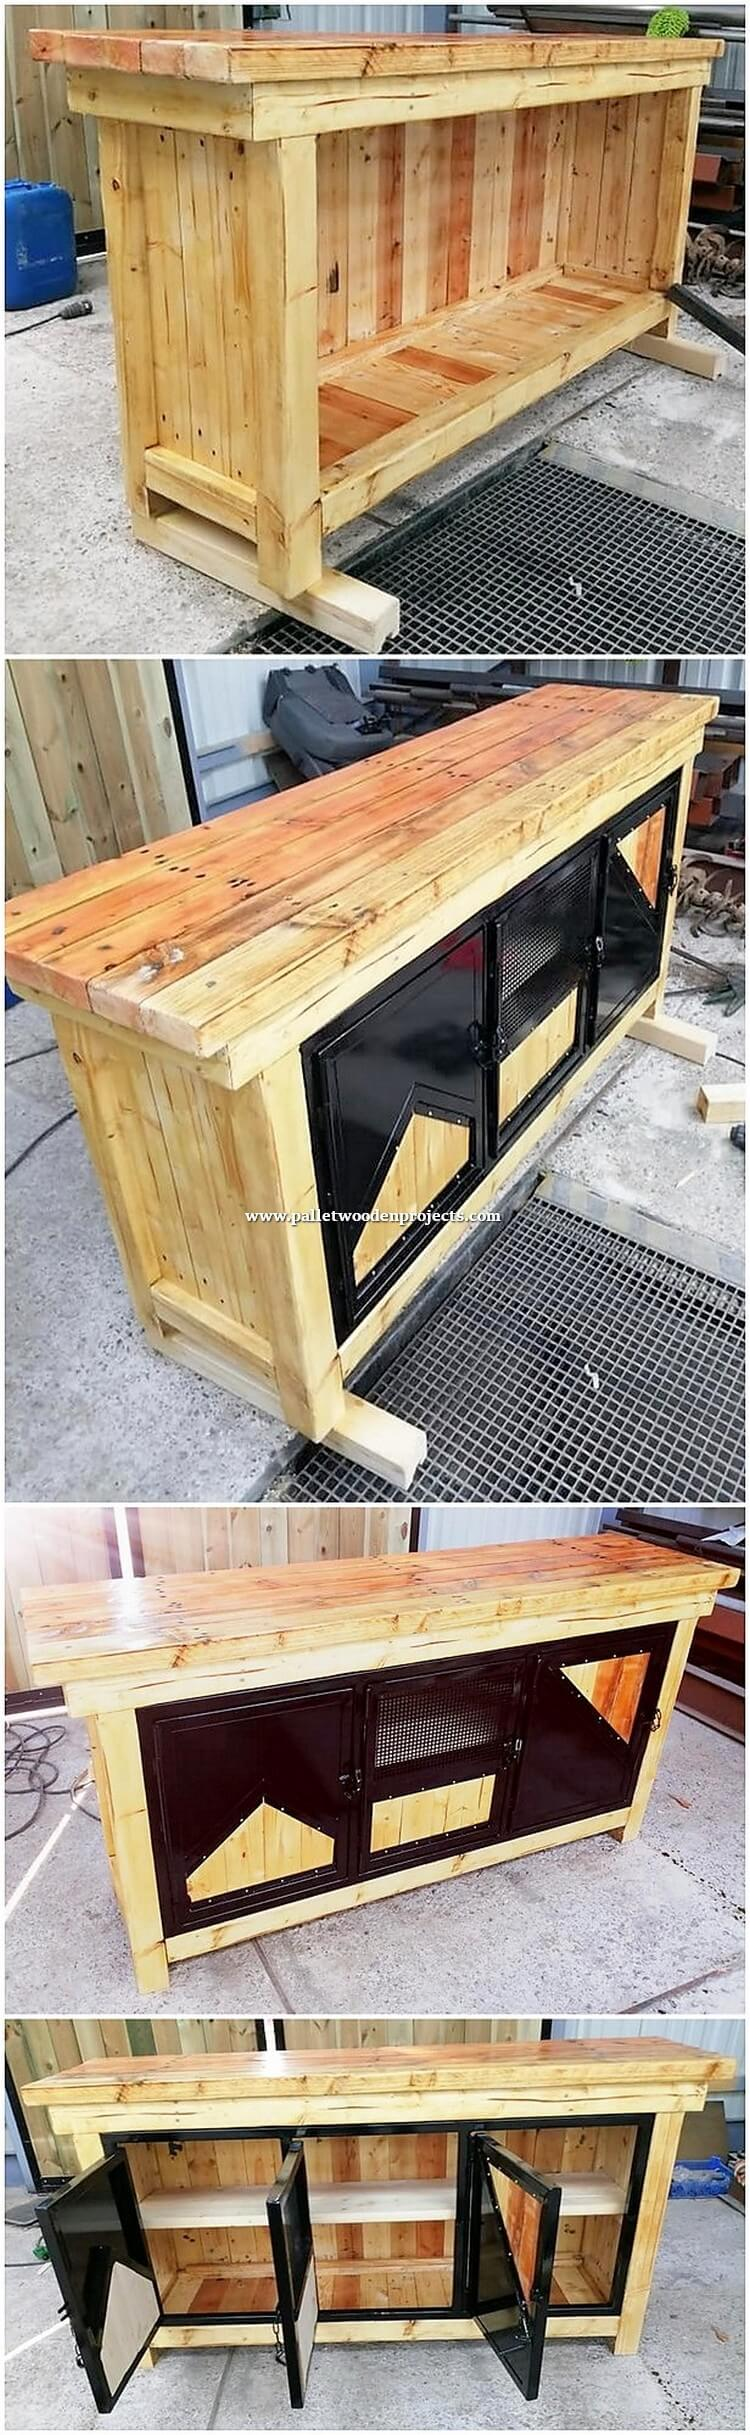 Details about  /Banana Stand Reclaimed Pallet Wood Handmade Free Shipping